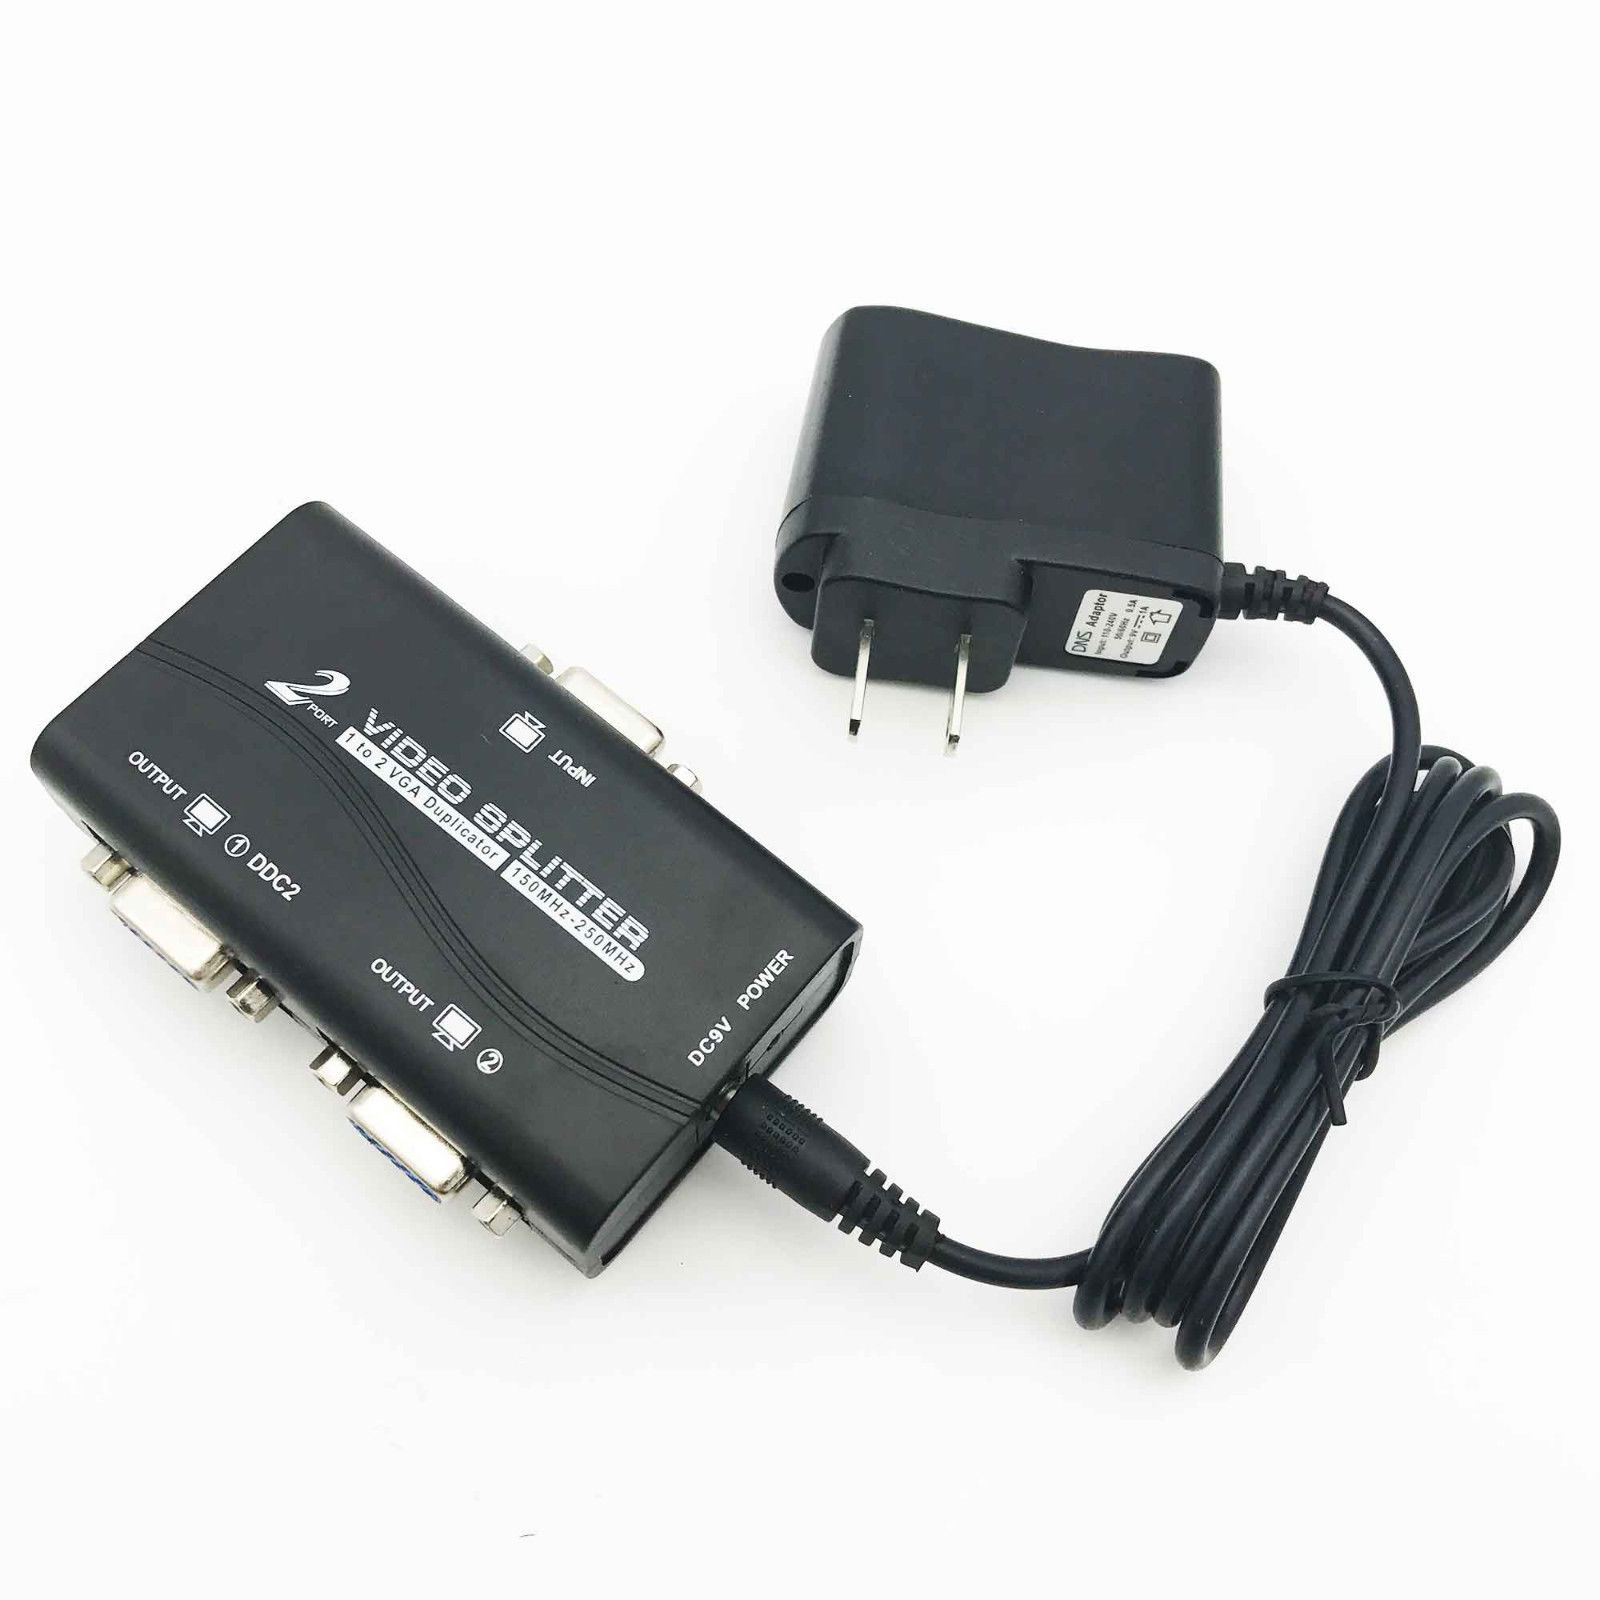 2 Port VGA SVGA LCD 1 In 2 Out Video Splitter Box Adapter For LCD PC TV Monitor With Power Cable